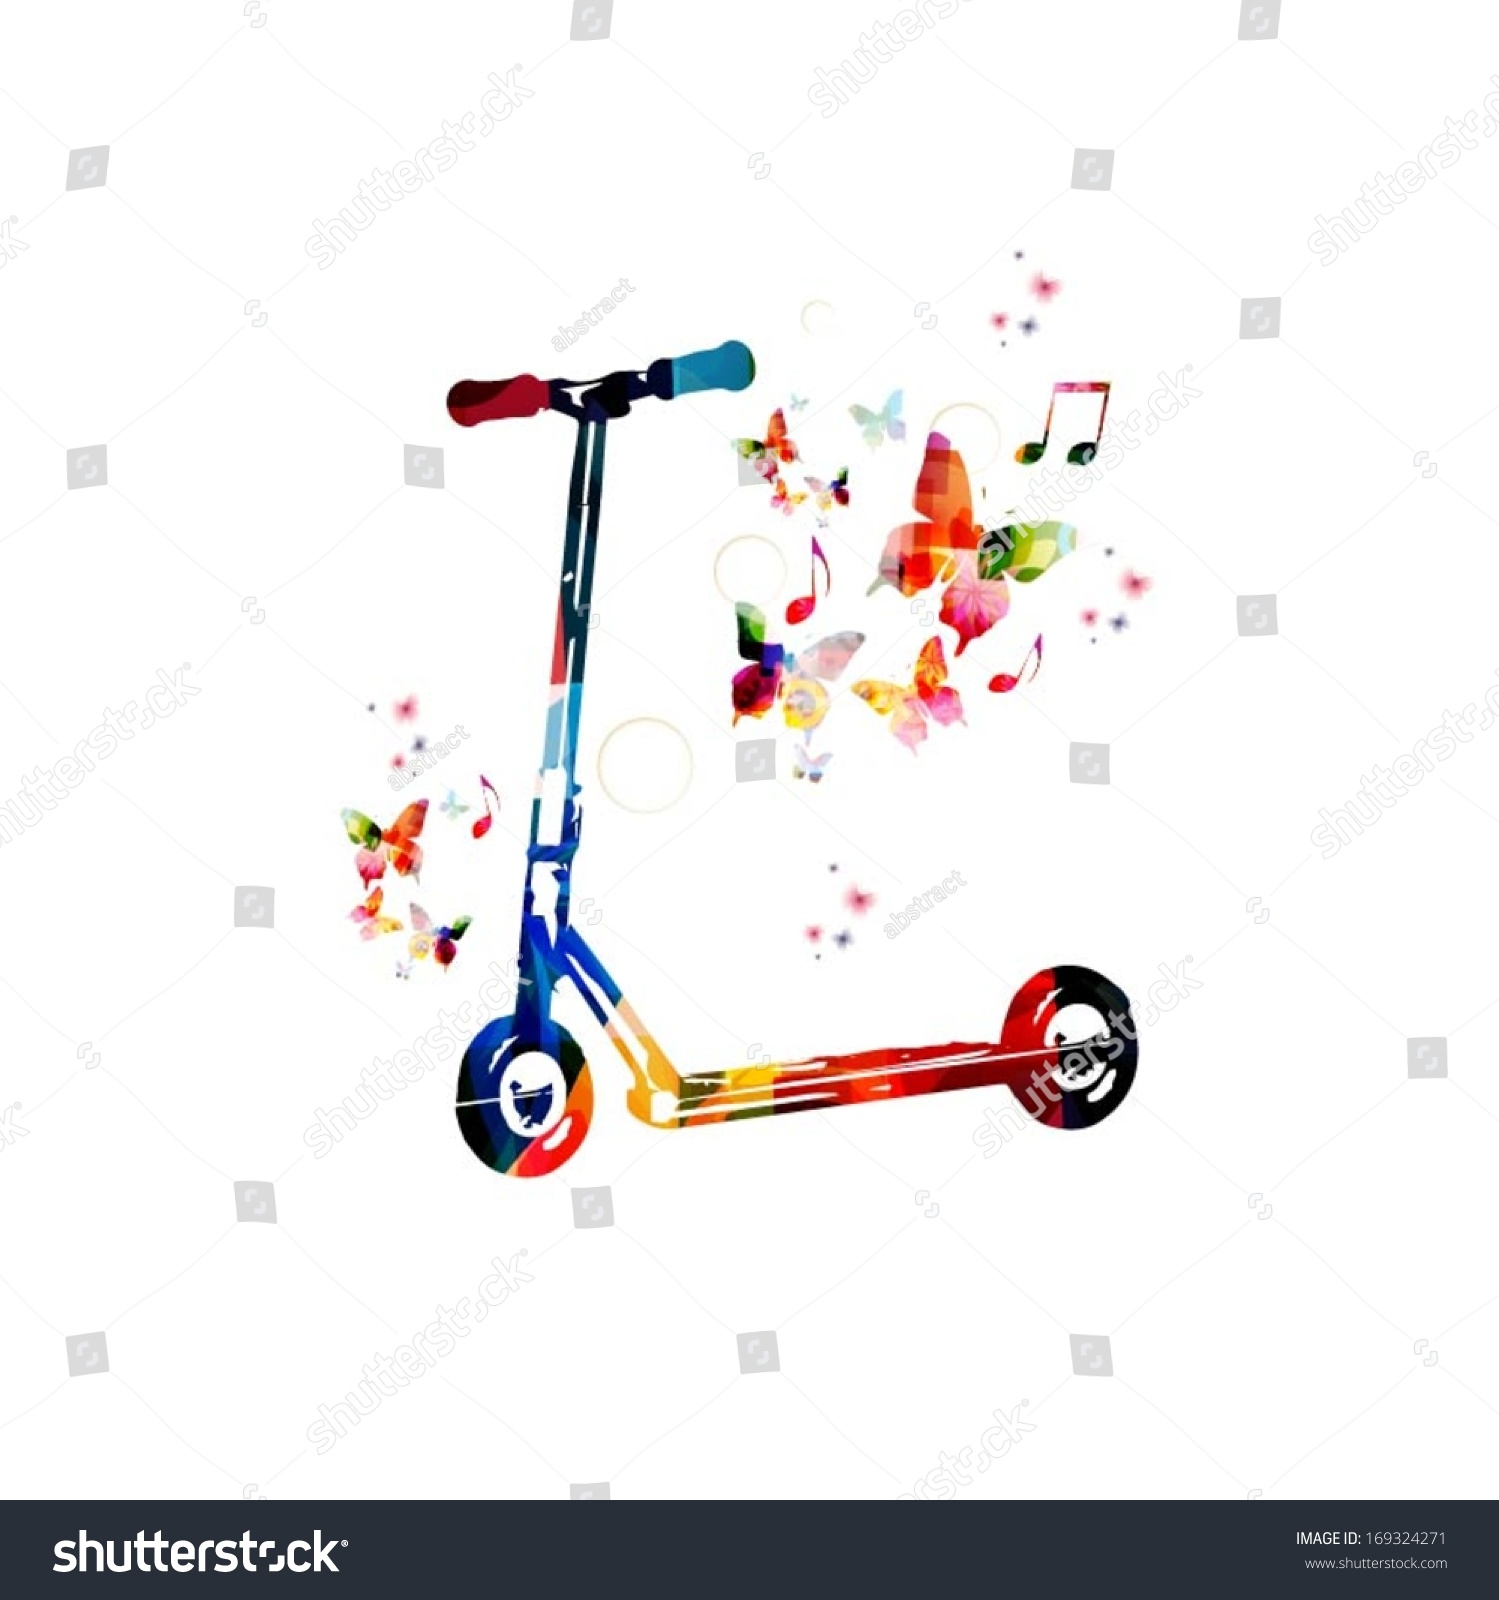 Colorful Vector Kick Scooter Background Butterflies Stock Vector 1499x1600